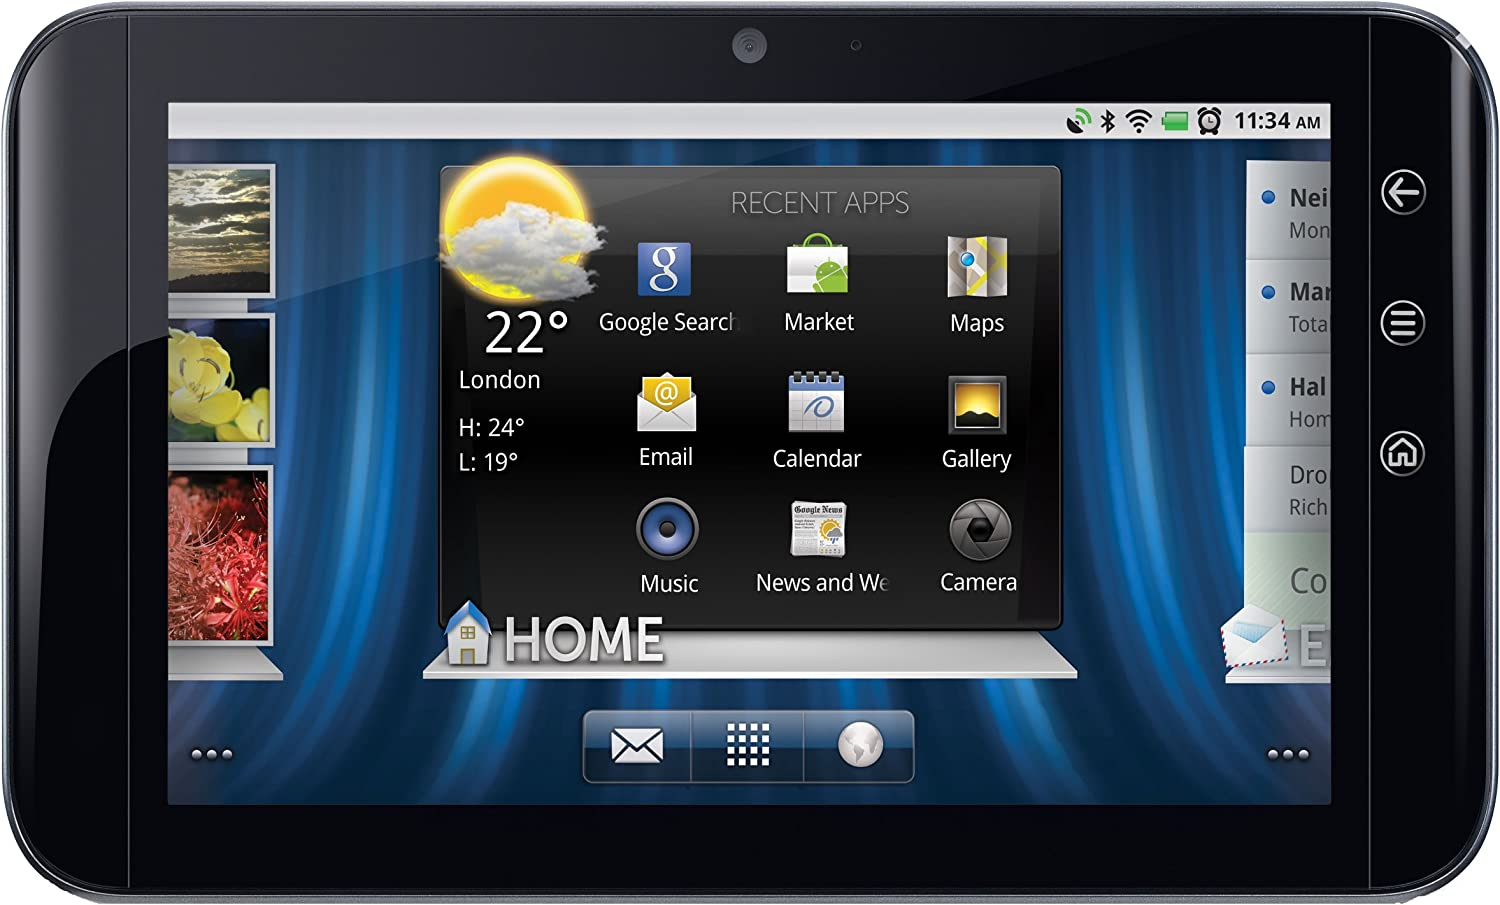 Dell Streak 7 4G Android Tablet (T-Mobile)